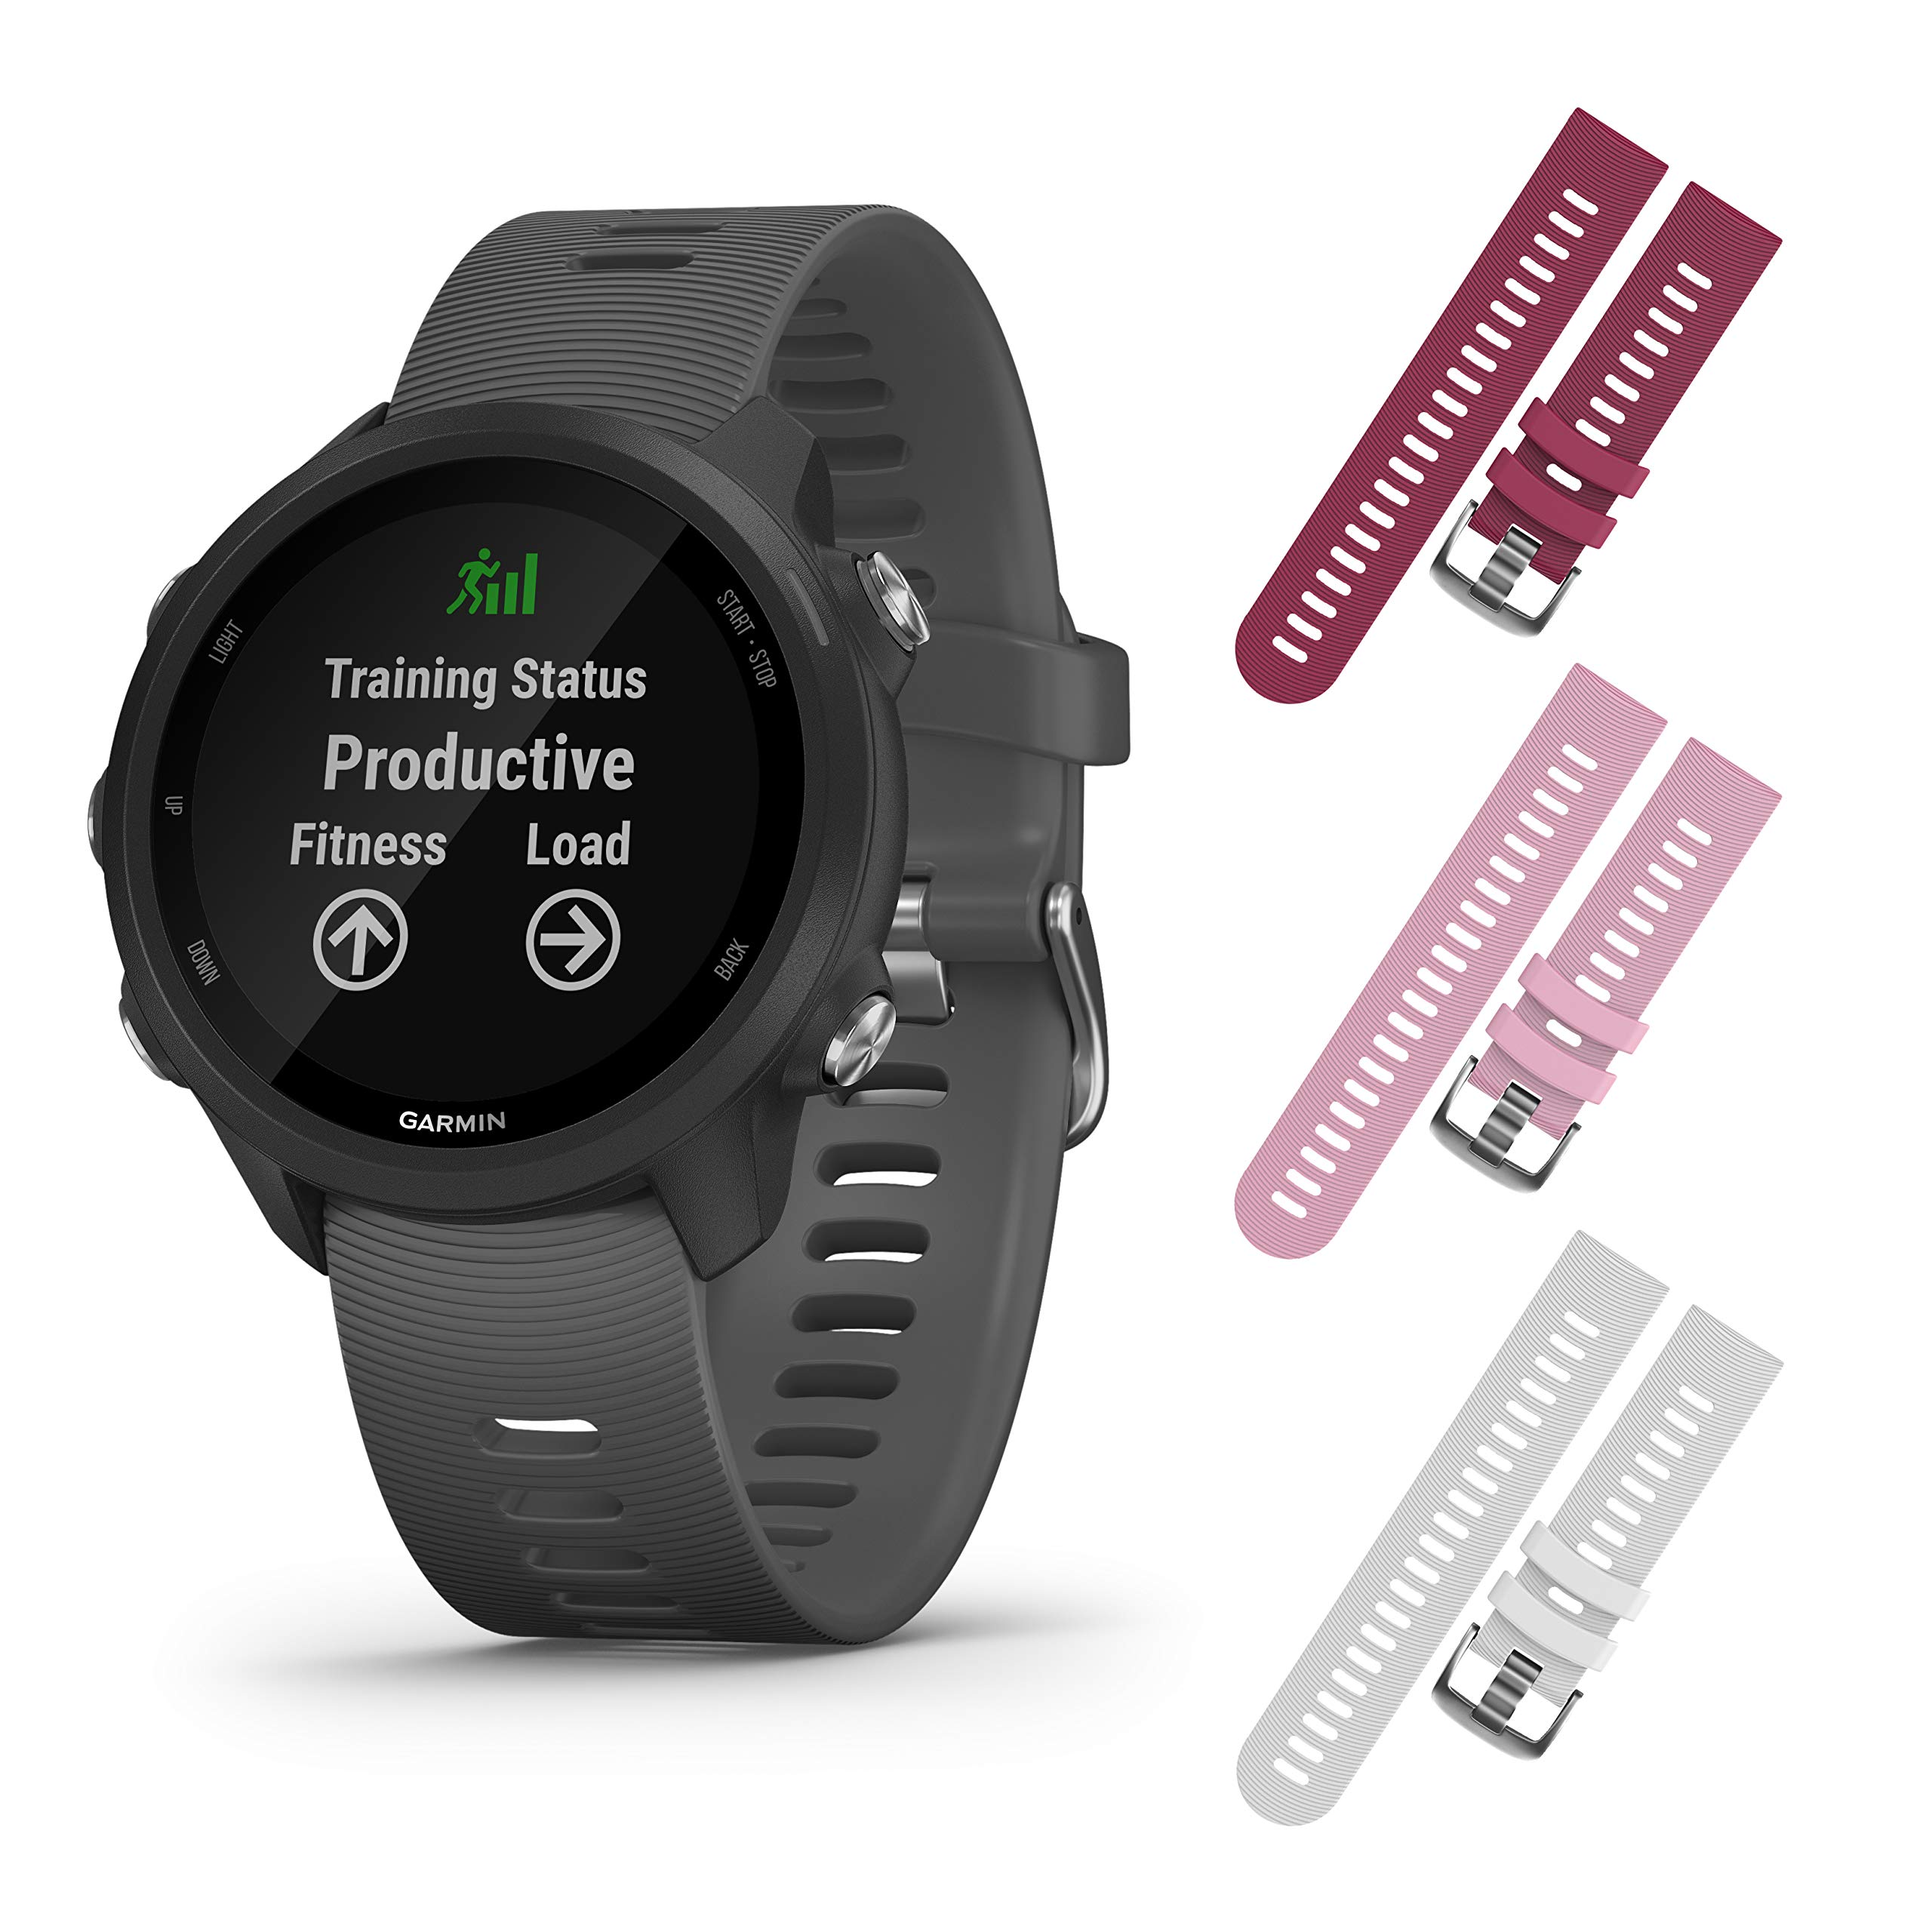 Garmin Forerunner 245 GPS Running Smartwatch with Included Wearable4U 3 Straps Bundle (Slate Grey 010-02120-00, Berry/Pink/White)